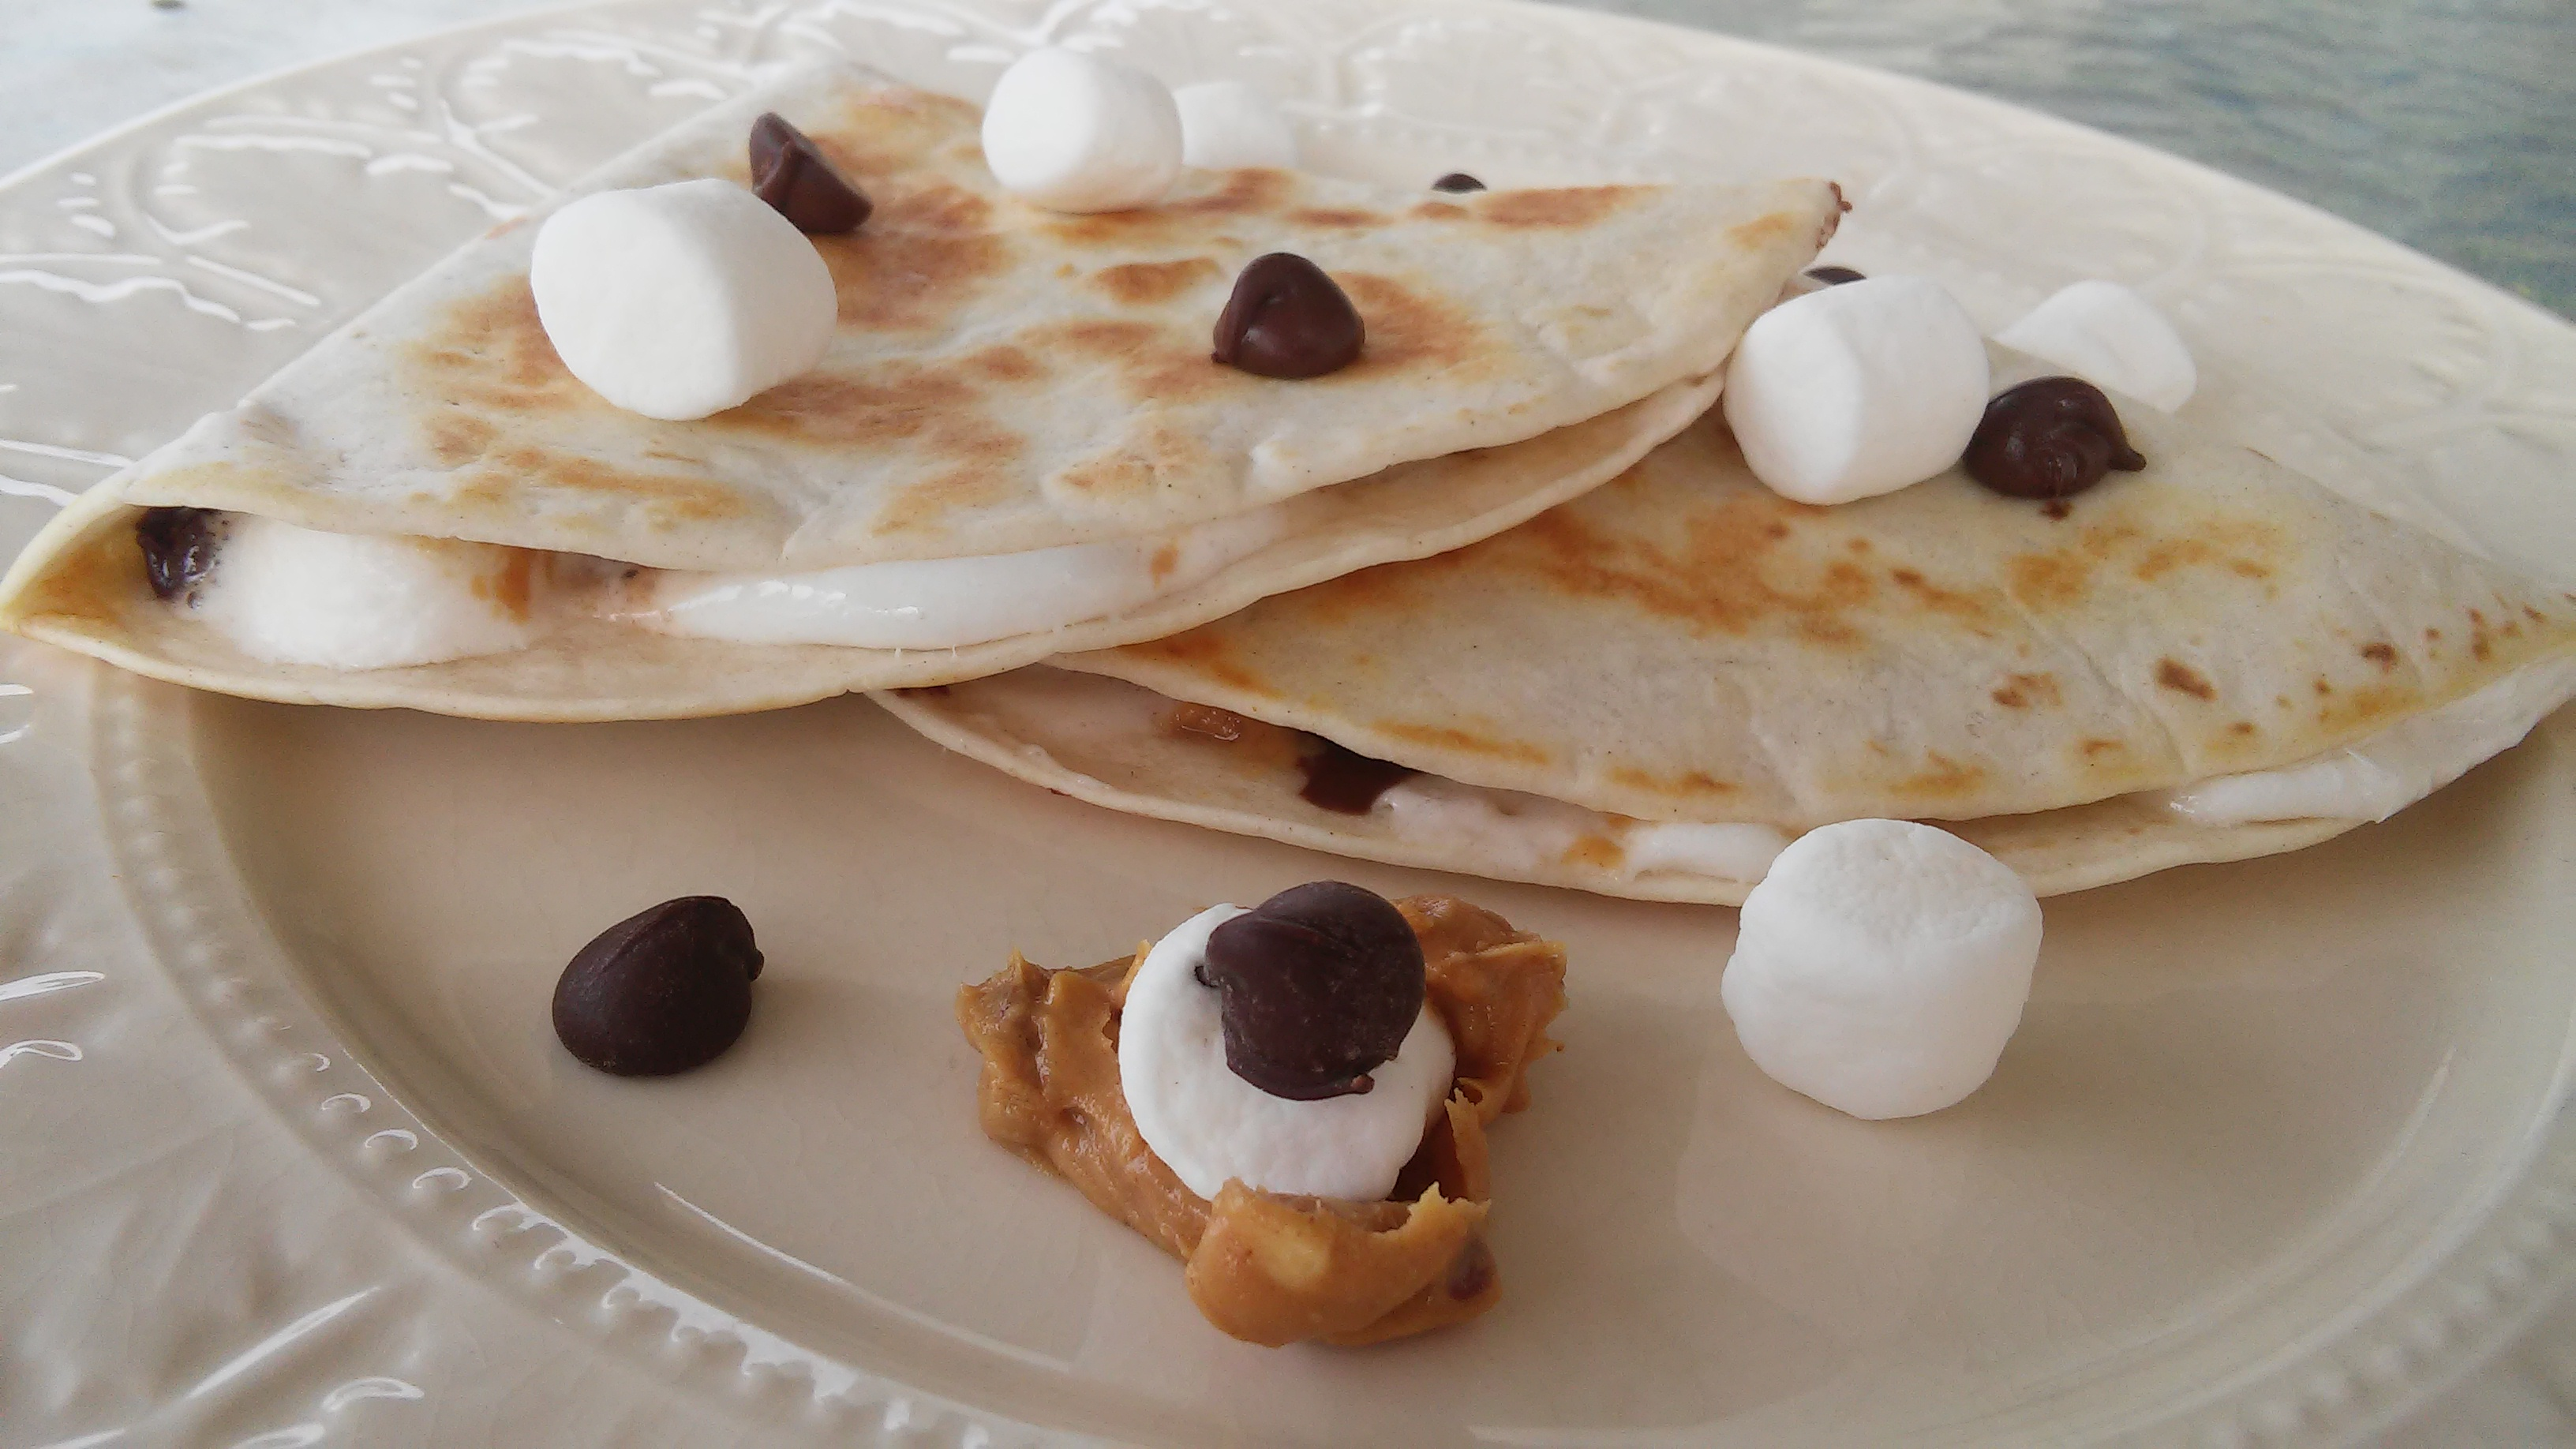 Dessert Quesadillas with Peanut Butter, Chocolate, and Marshmallow Tammy Lynn